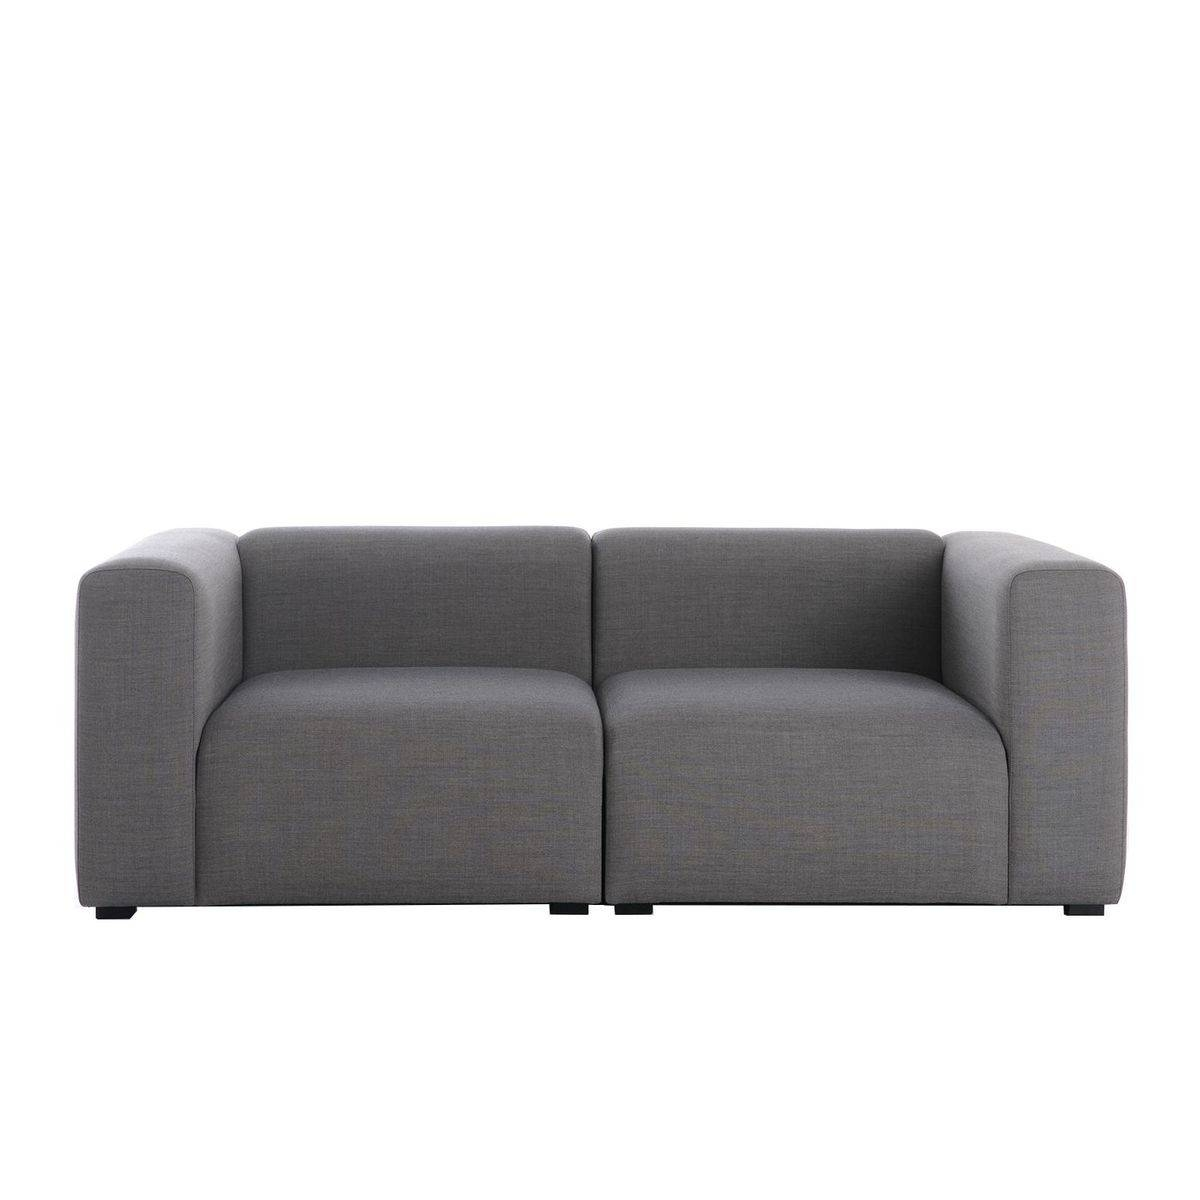 Mags 2 Seater Sofa | Hay | Ambientedirect with 2 Seater Sofas (Image 15 of 30)